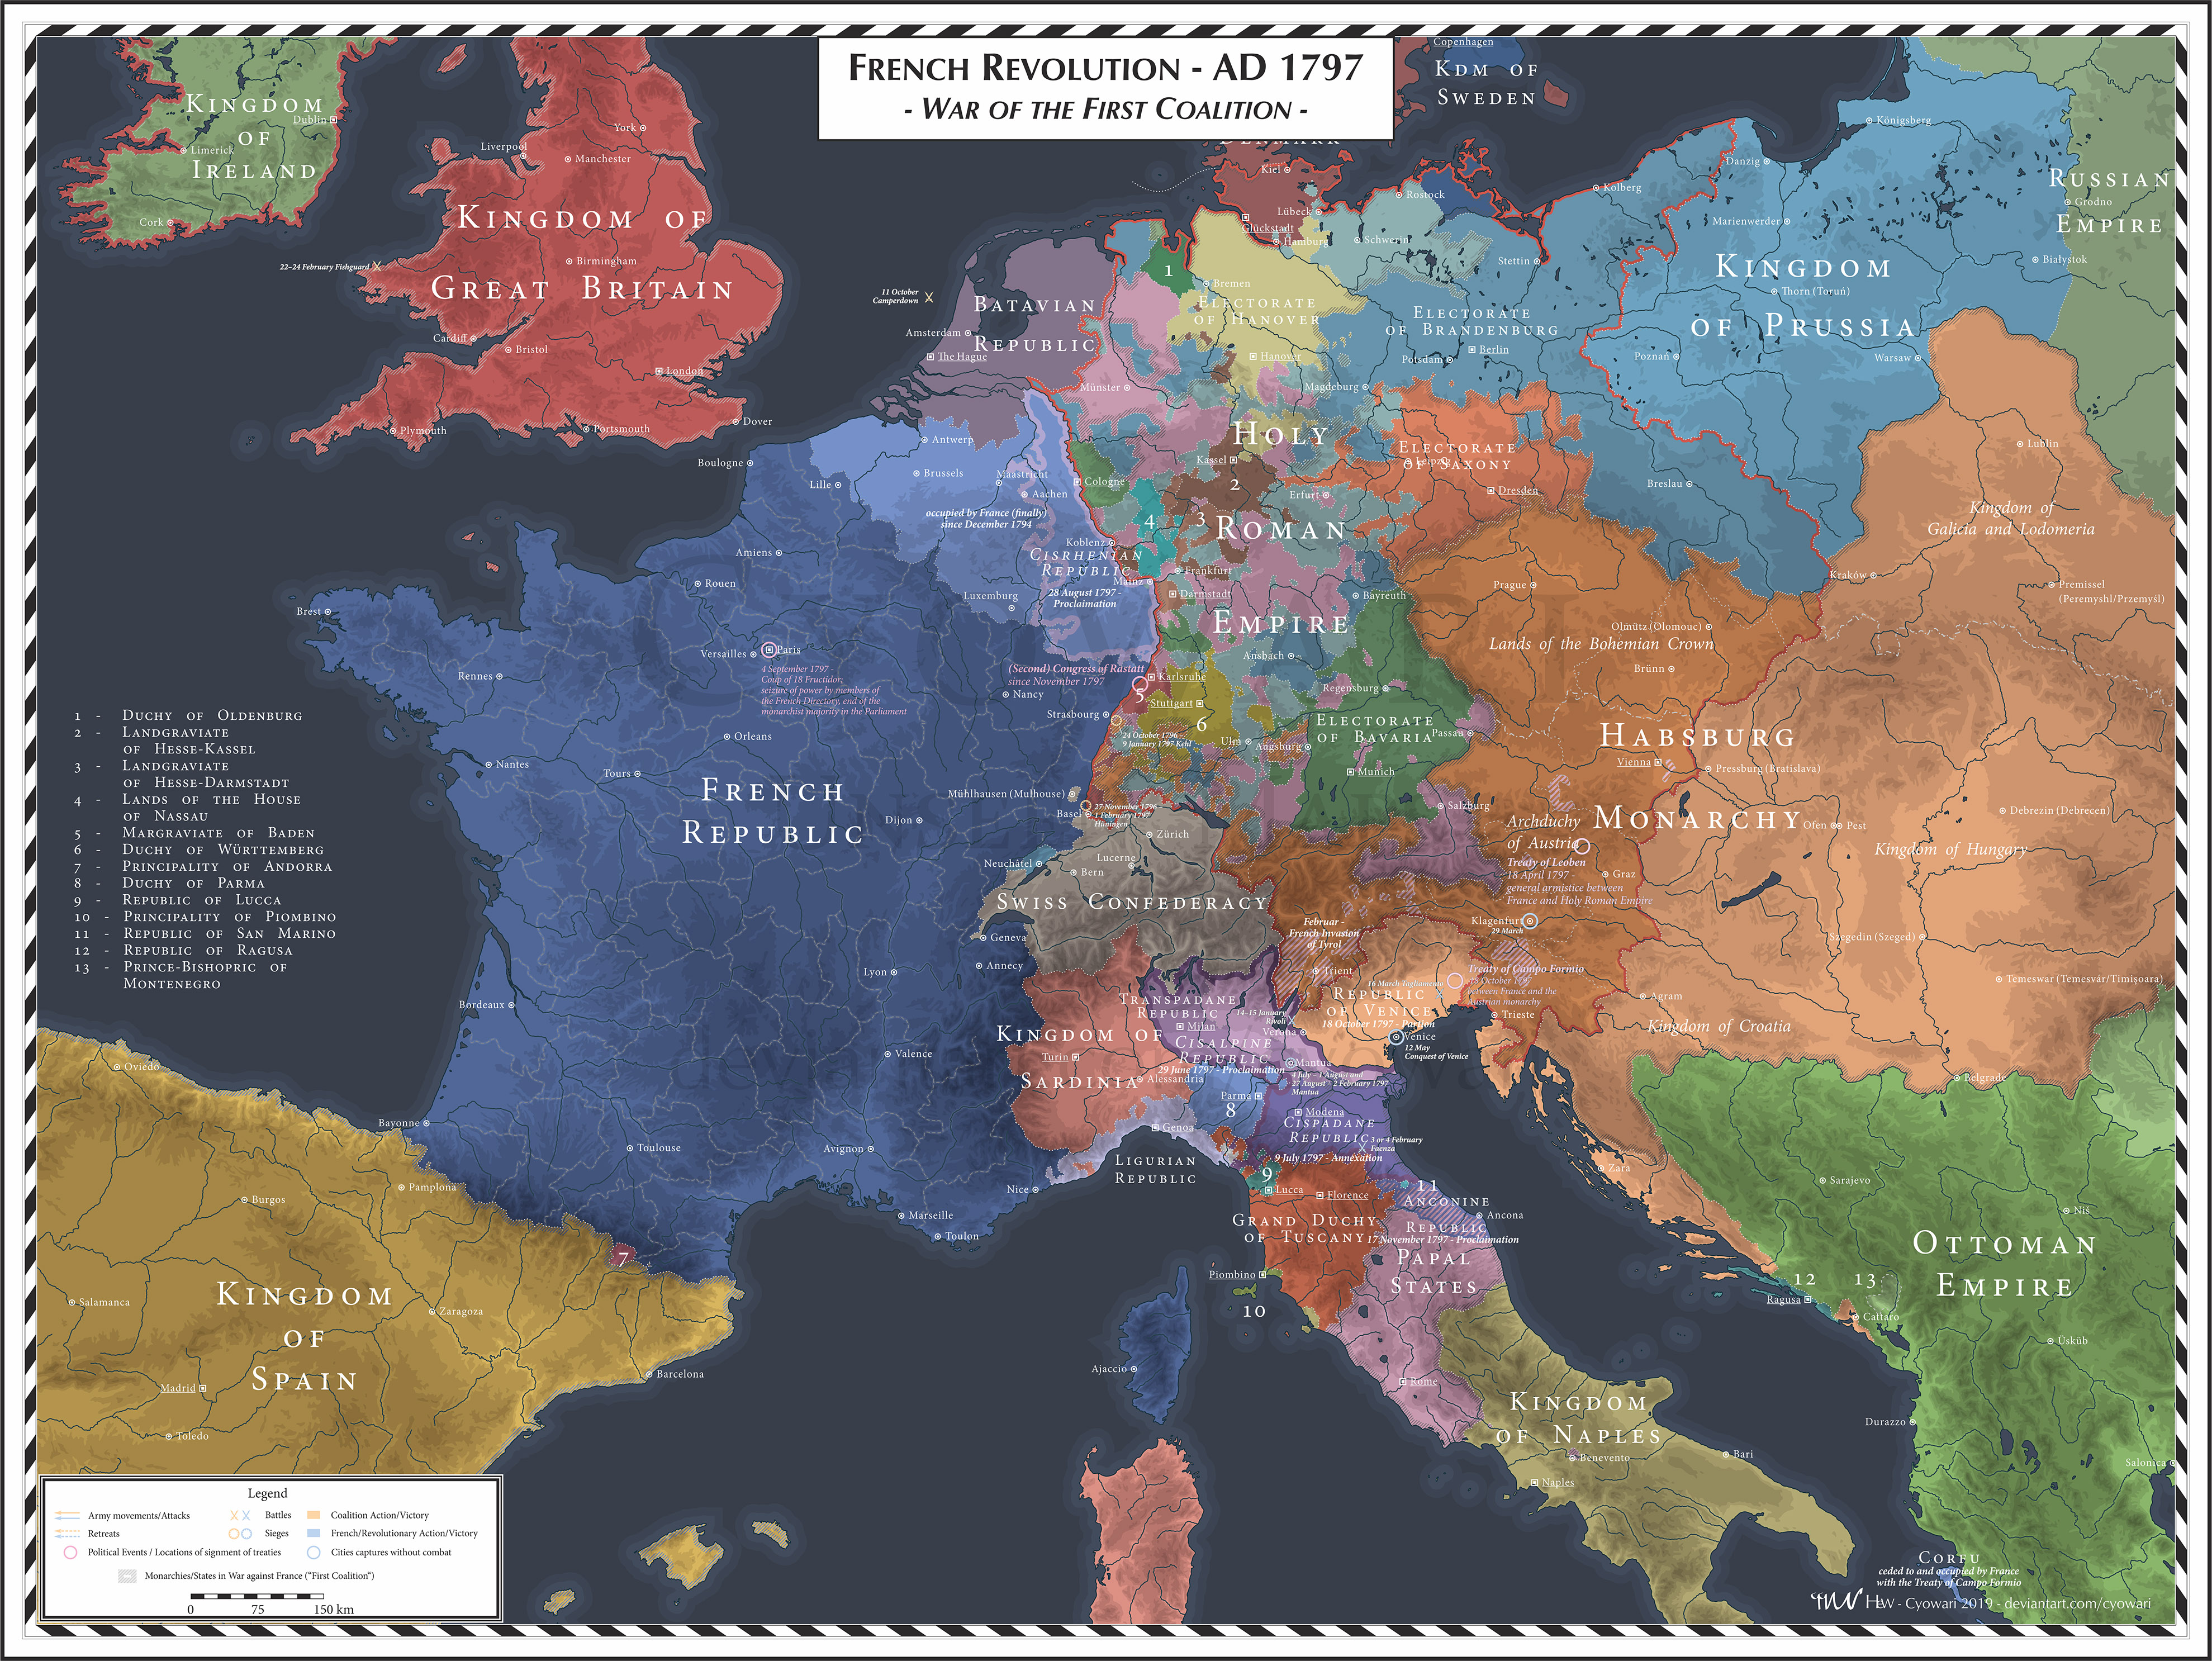 French Revolution - 1797 - First Coalition